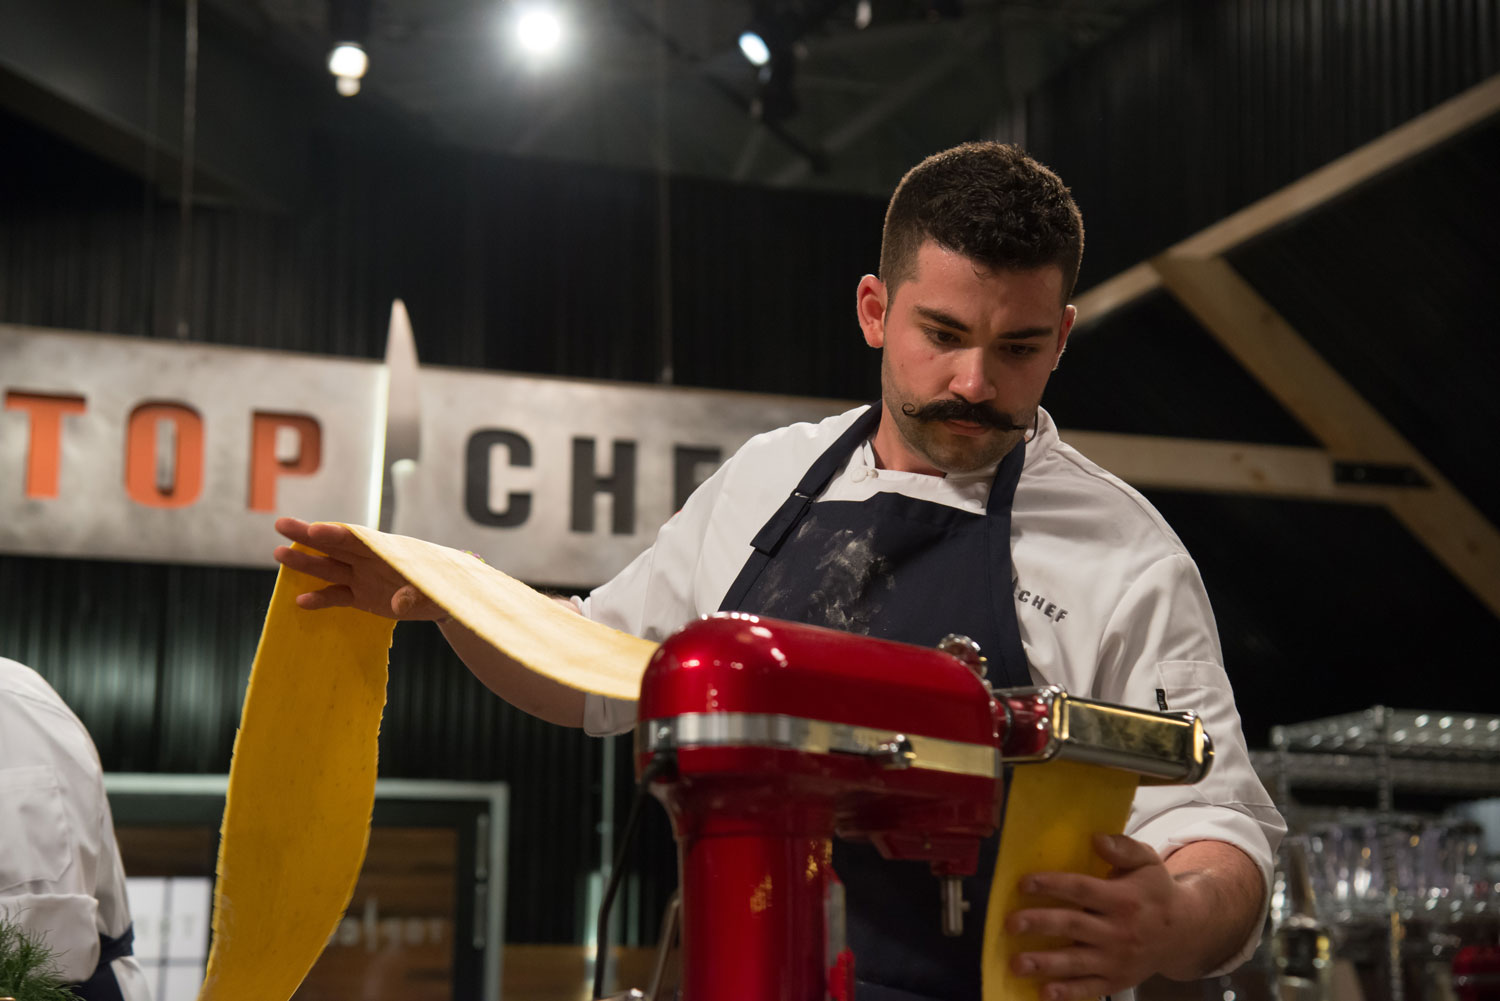 Chef Joe Sasto on the premiere of Top Chef.